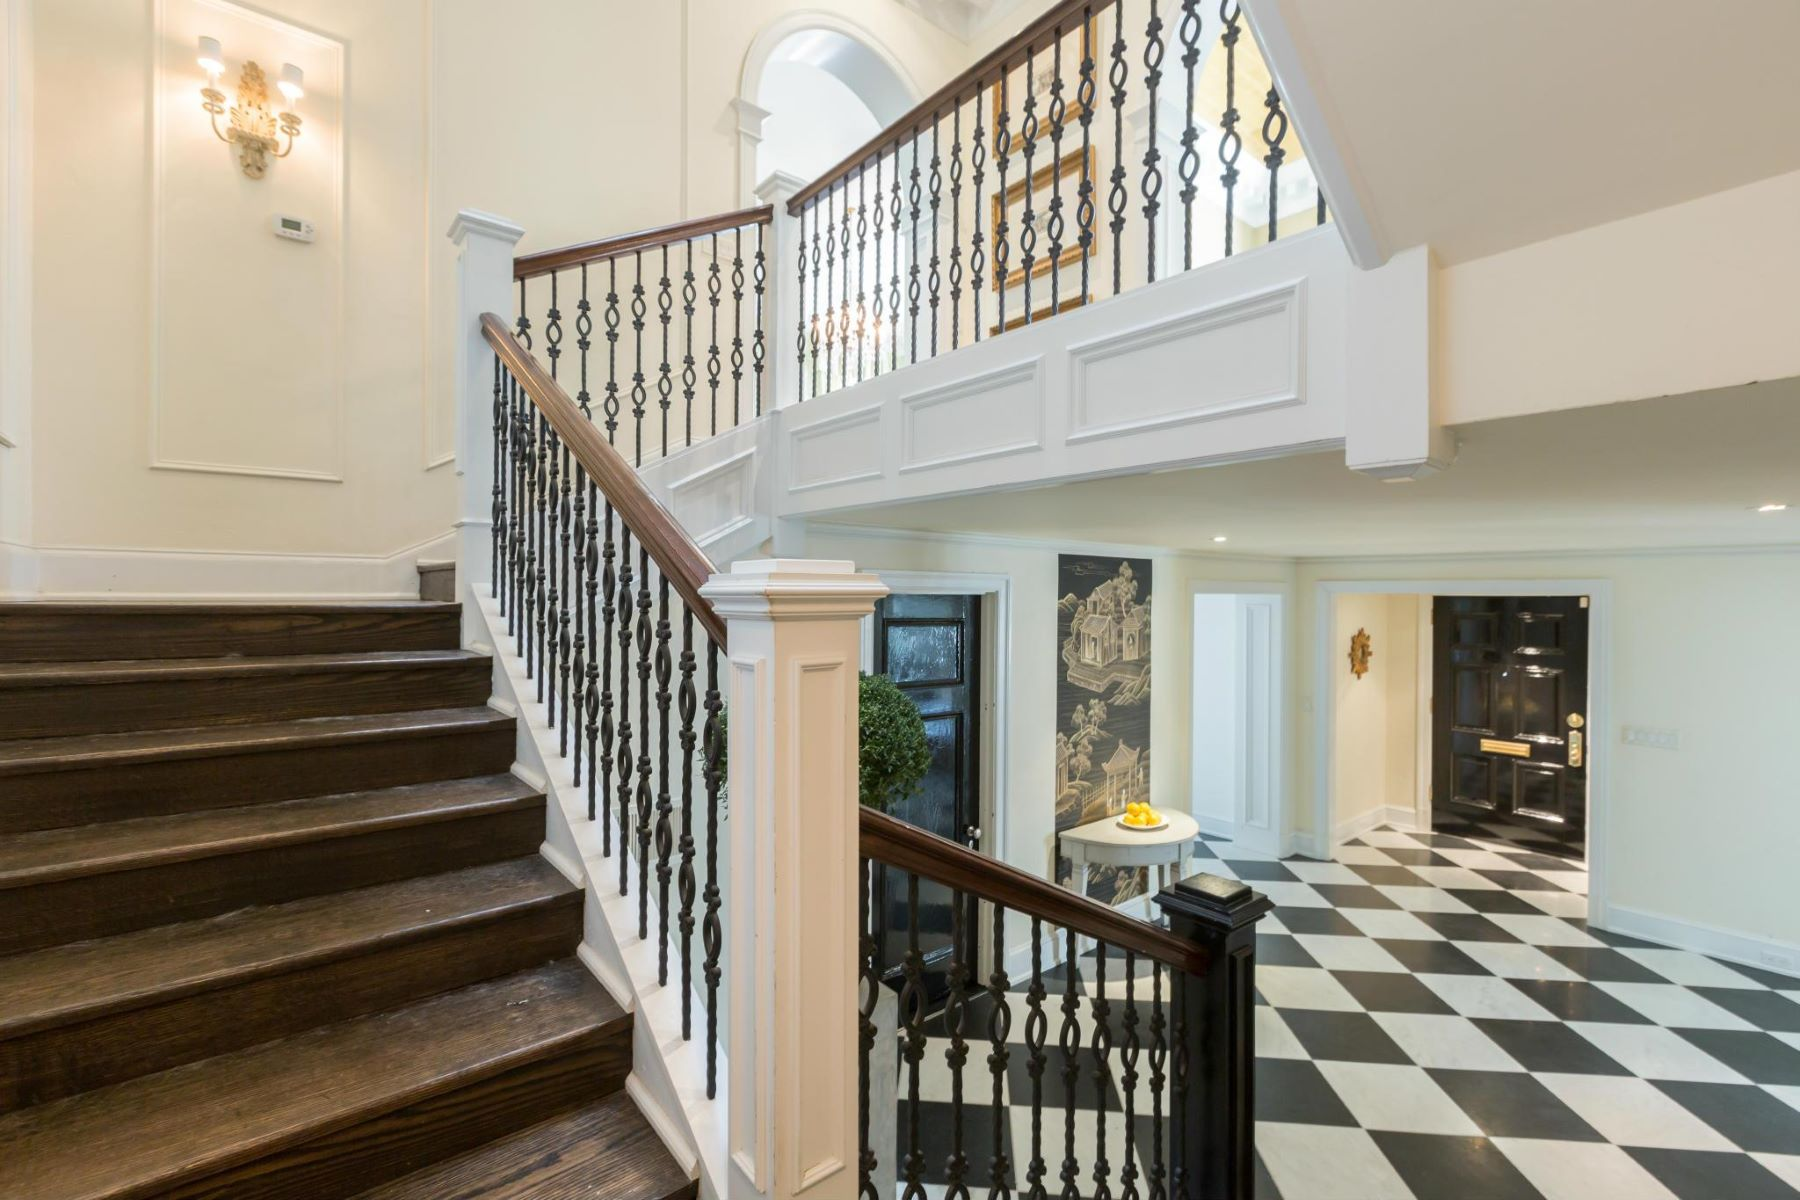 Additional photo for property listing at 2241 Bancroft Pl Nw 2241 Bancroft Pl Nw Washington, District Of Columbia 20008 United States